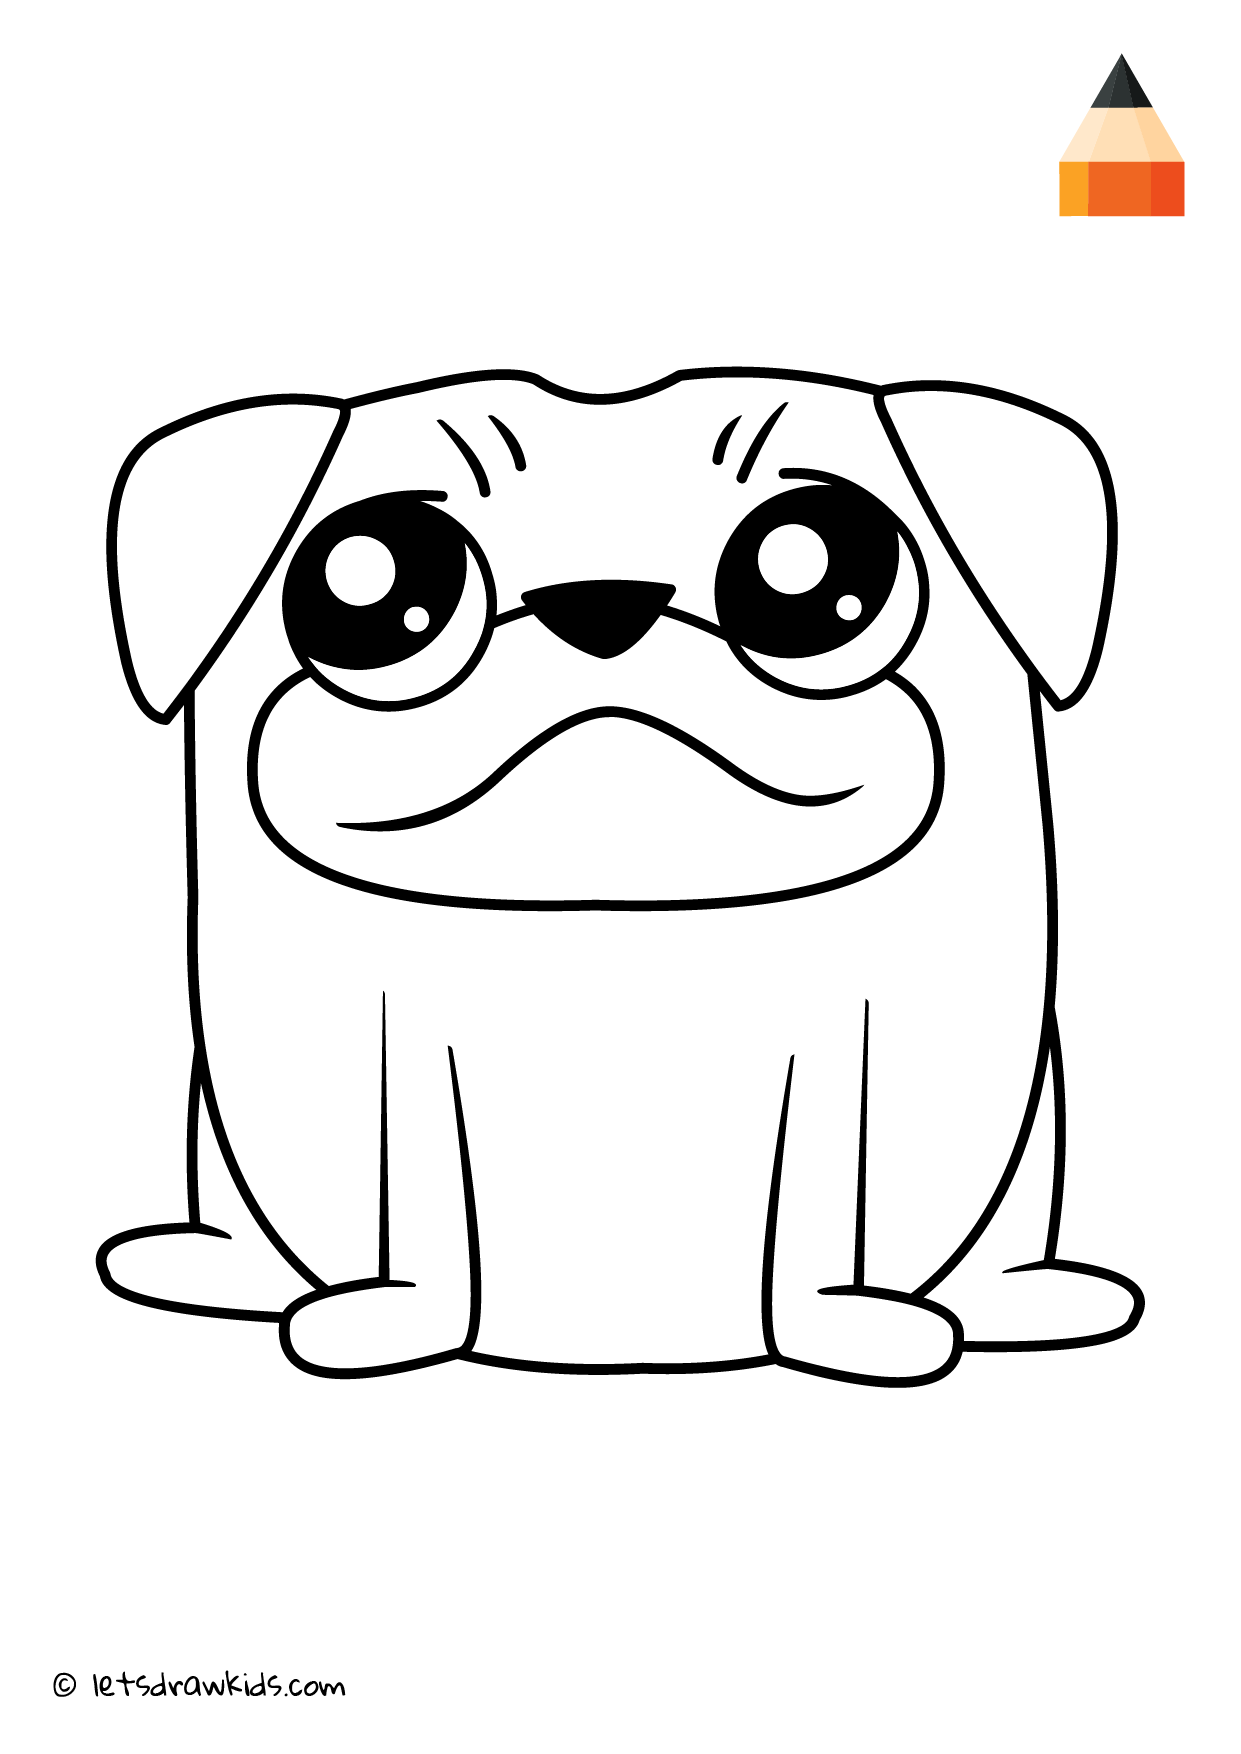 Coloring Page Pug Unicorn Coloring Pages Art Videos For Kids Coloring Pages For Kids